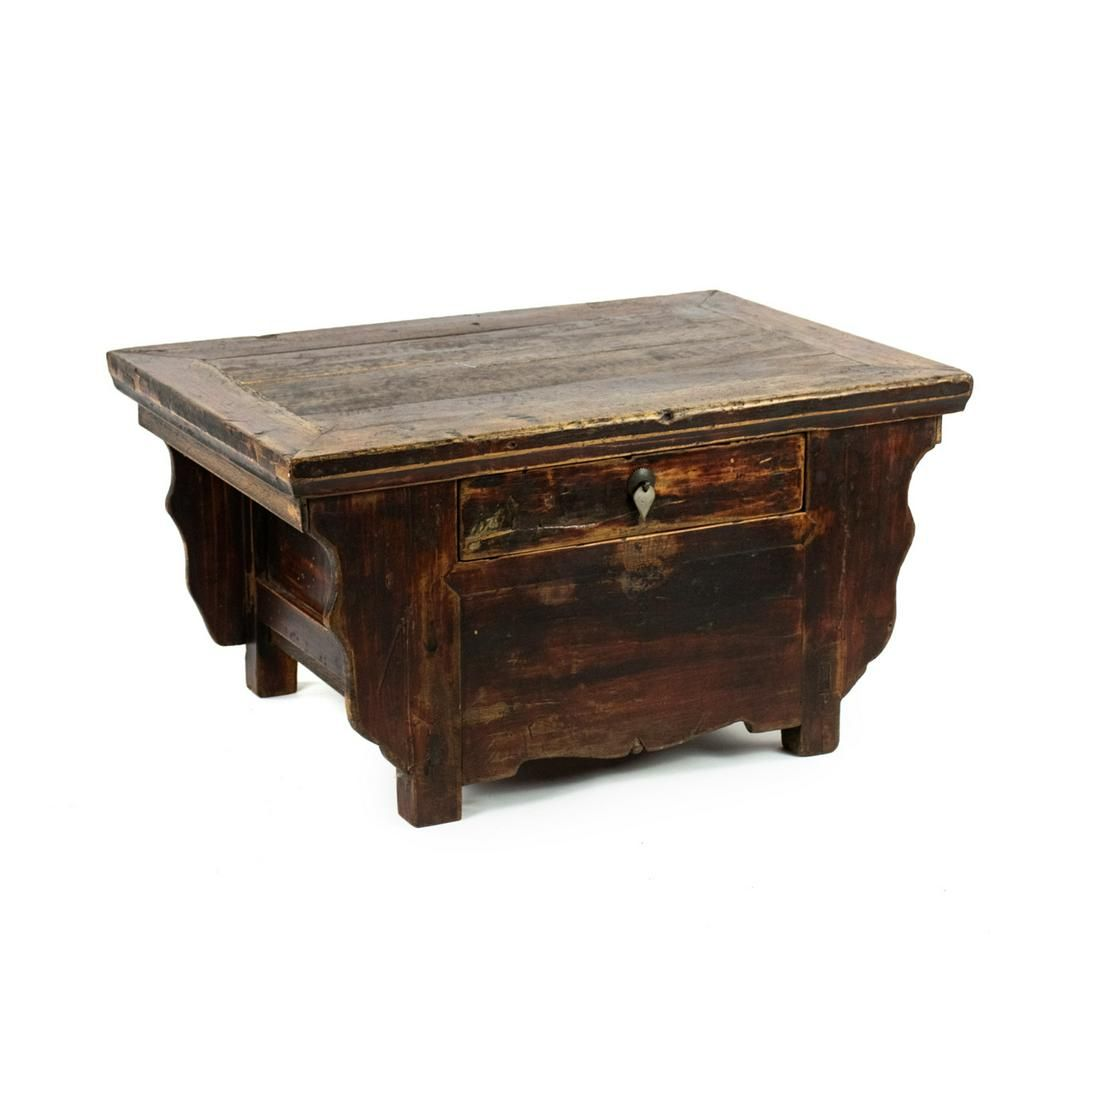 19th C. Chinese Small Low Meditation Altar Table